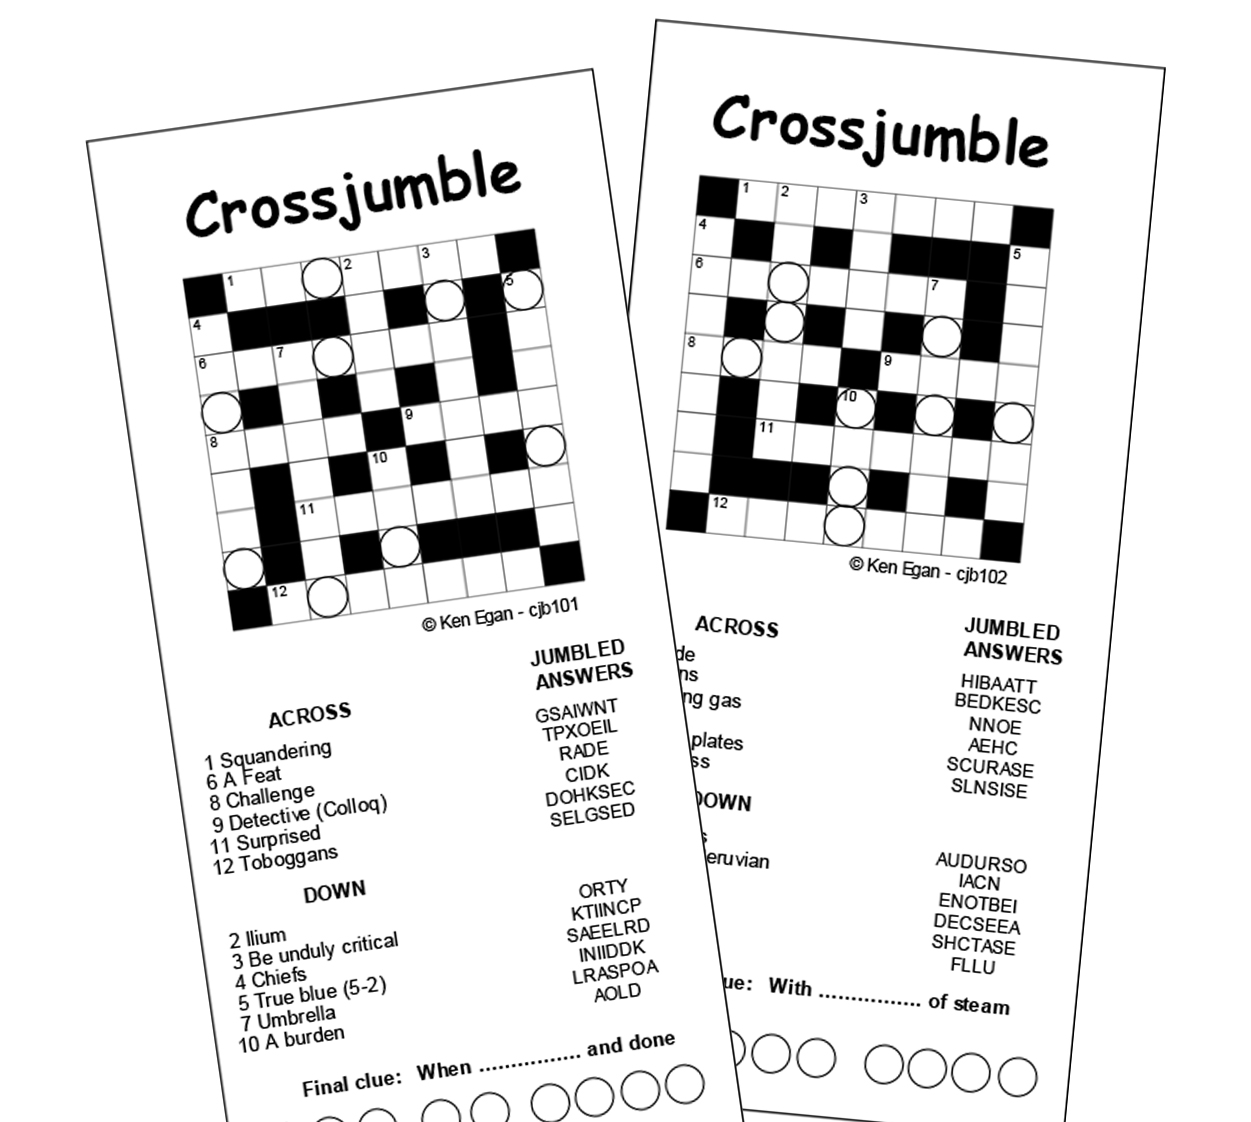 Thumbnail for 20 CROSSJUMBLE PUZZLE BOOKLET 01